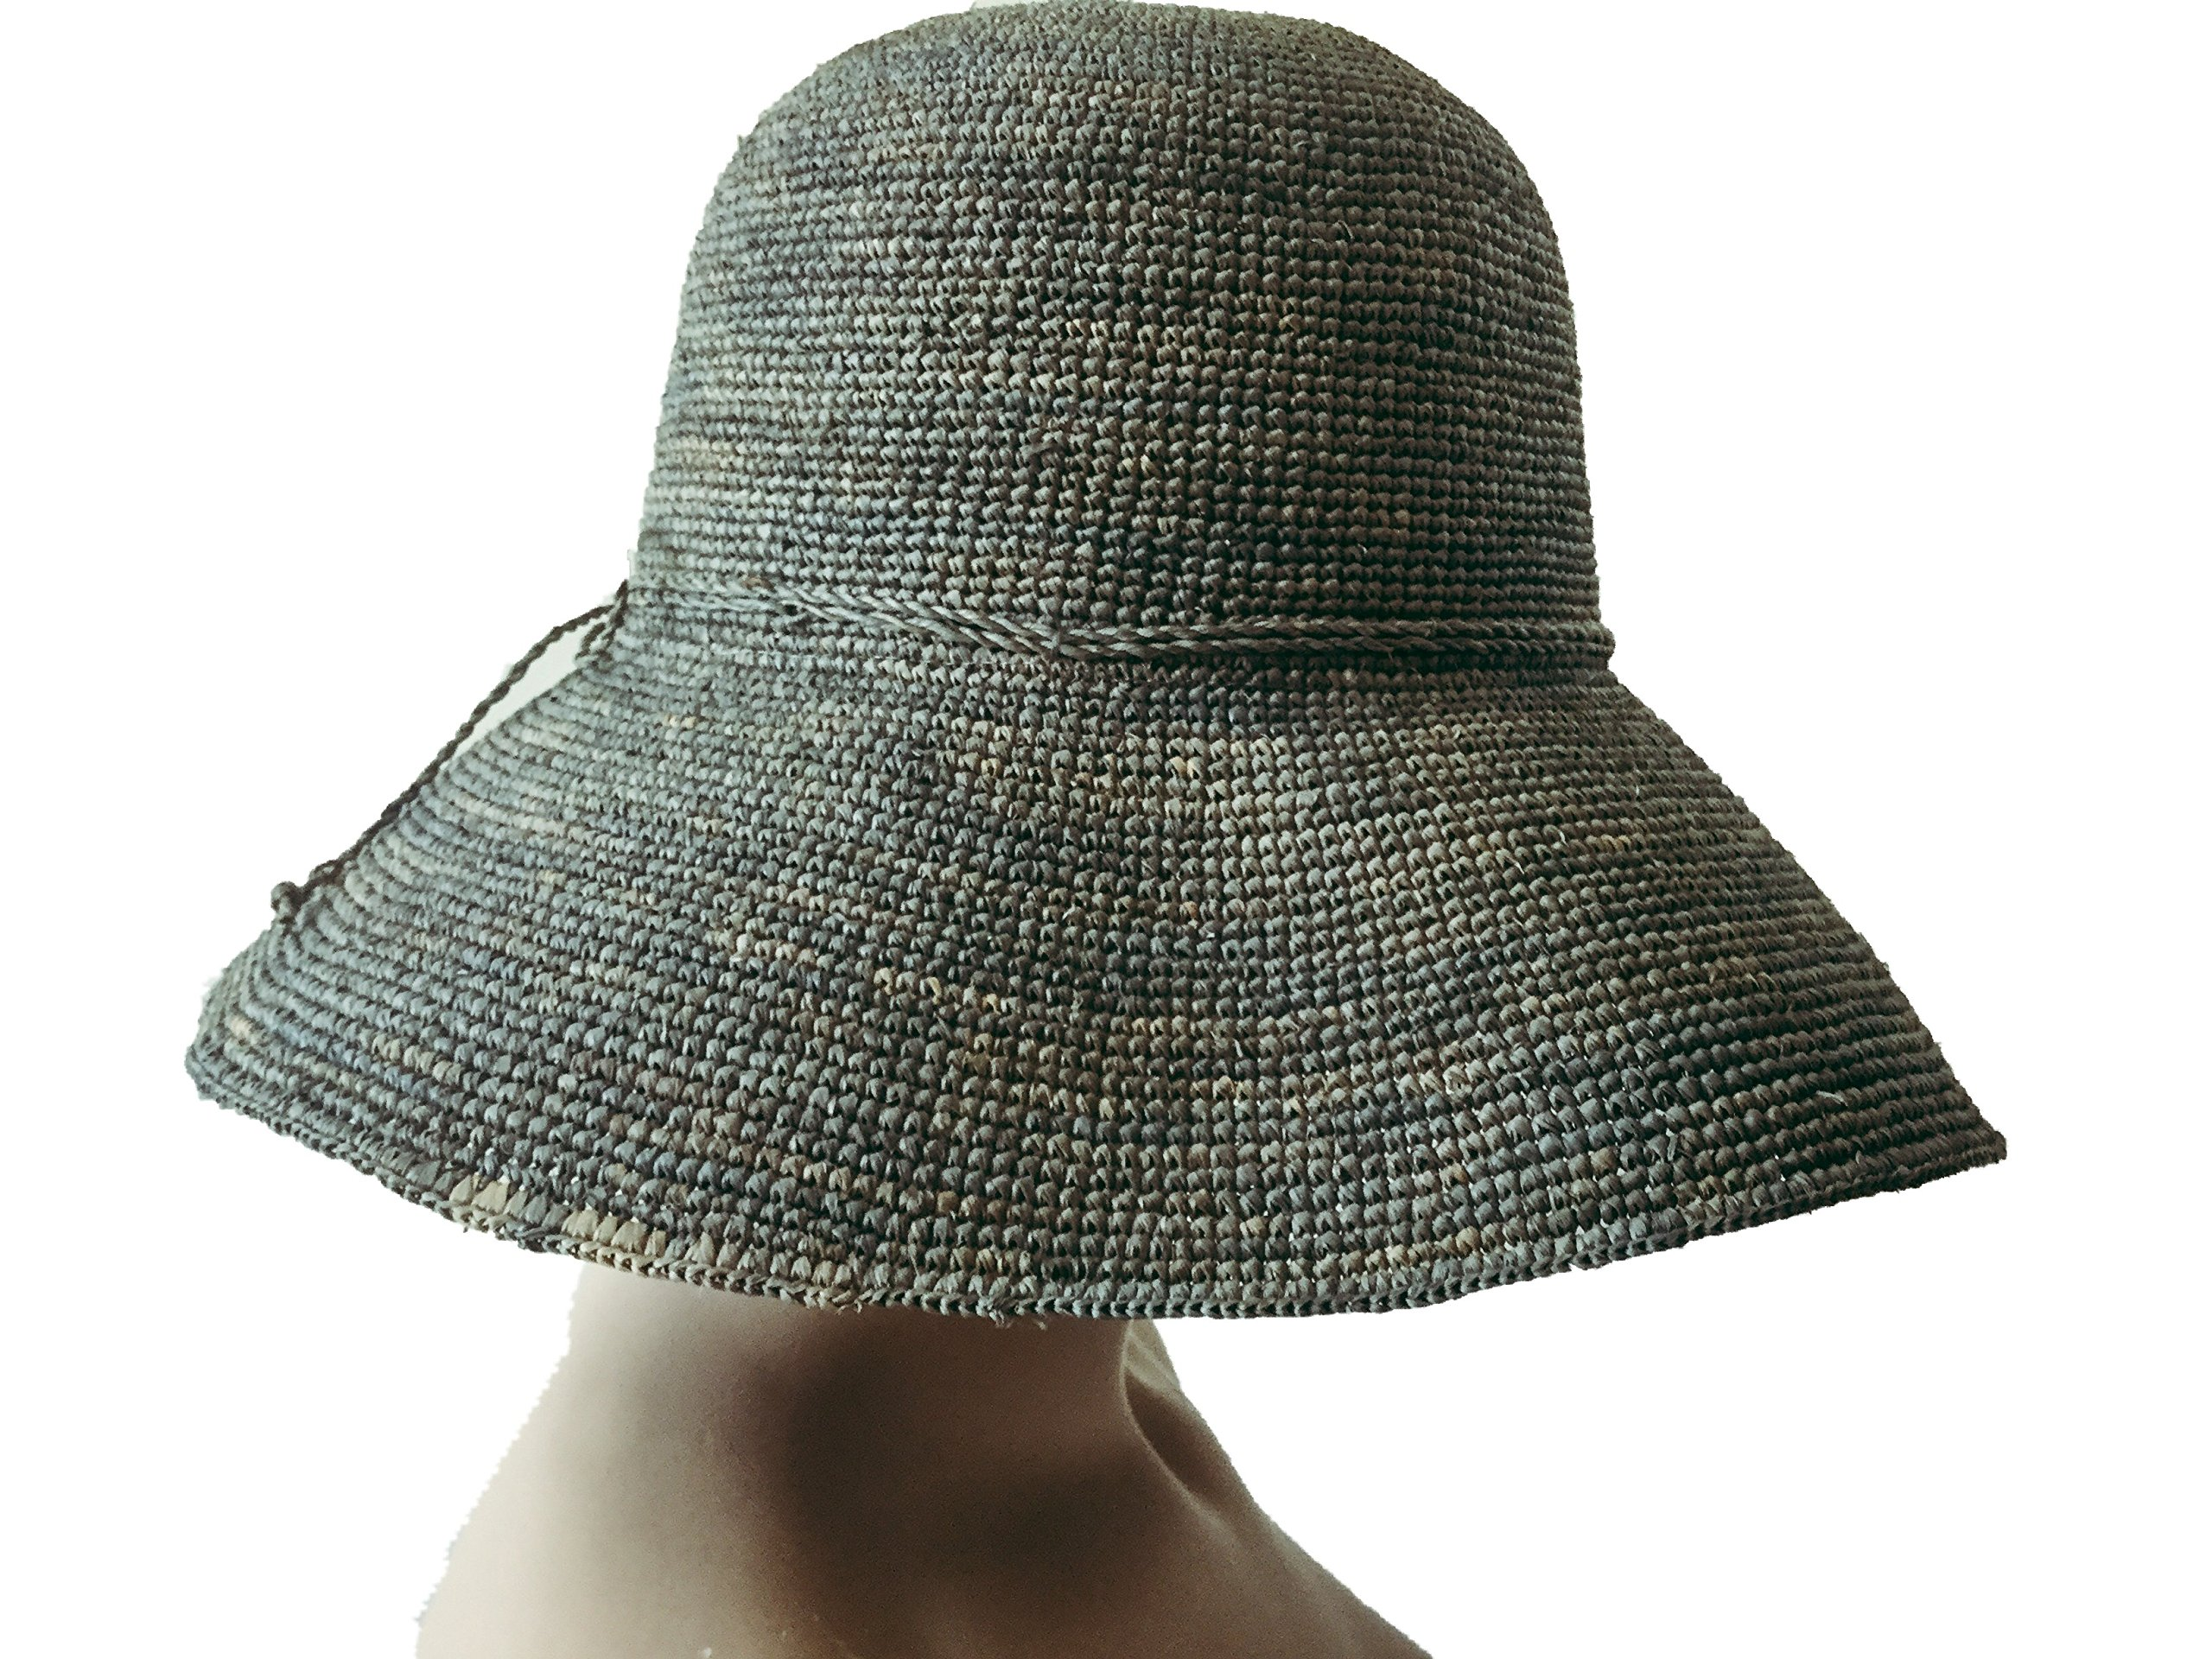 Nora and narahats Grey Raffia Sun Hat 12cm Wide Brim